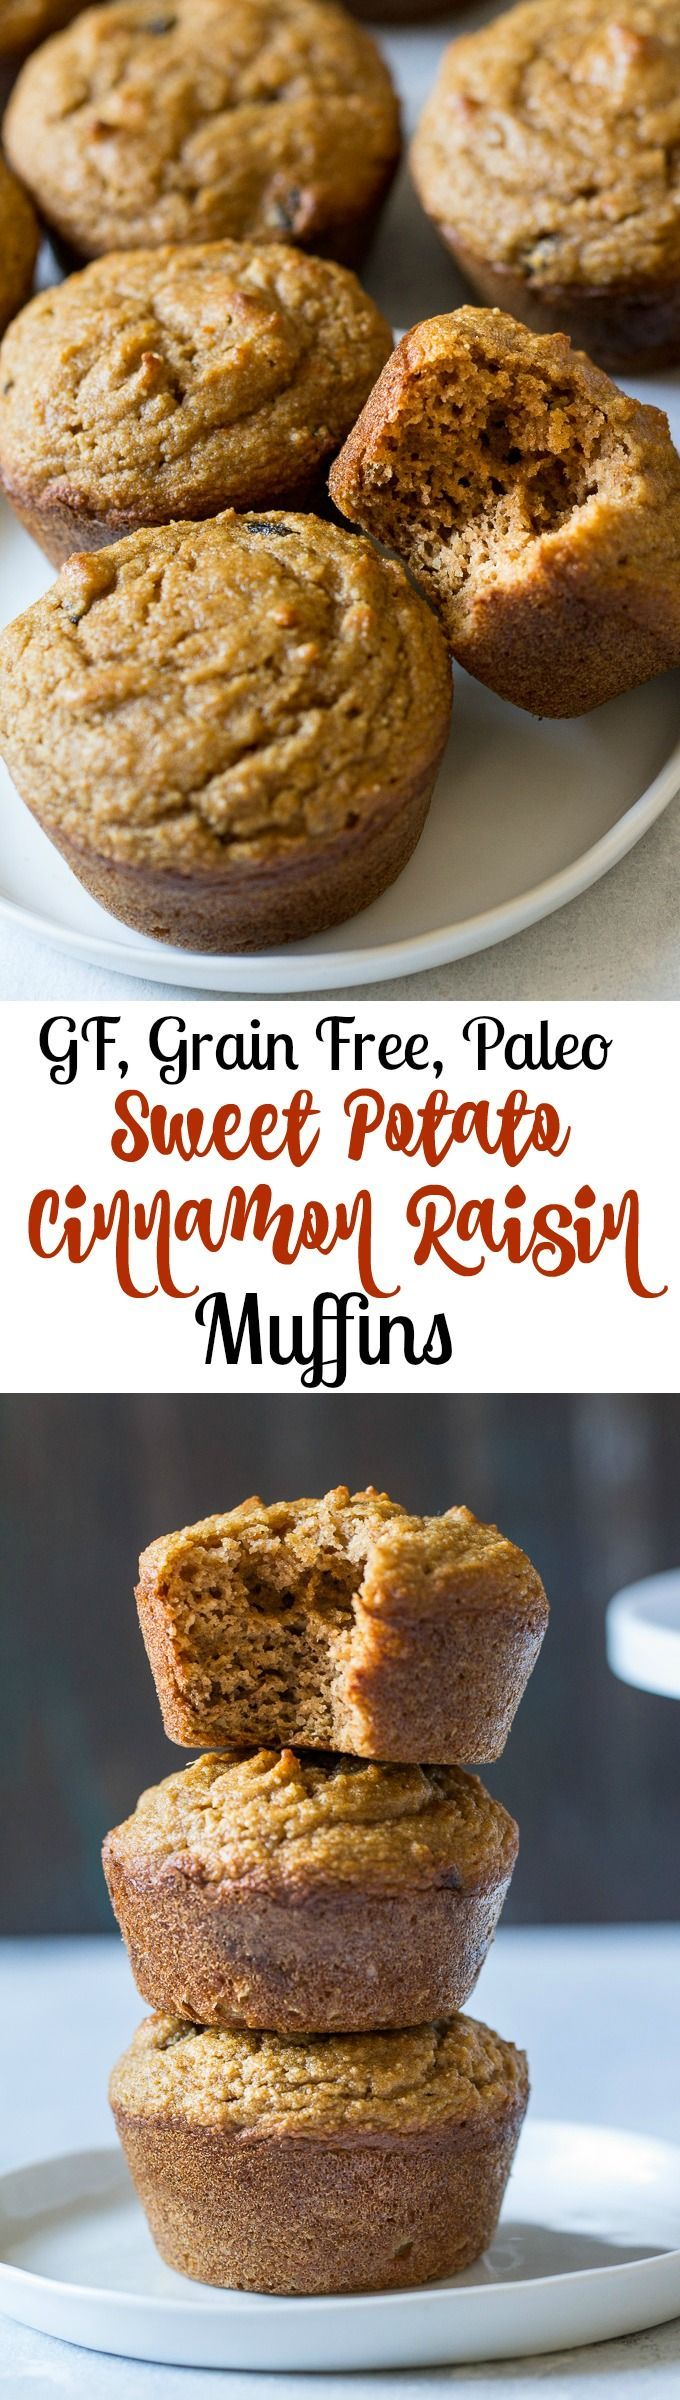 Cinnamon Raisin Sweet Potato Muffins that are grain free, dairy free, Paleo, kid friendly, great for snacks and breakfast.